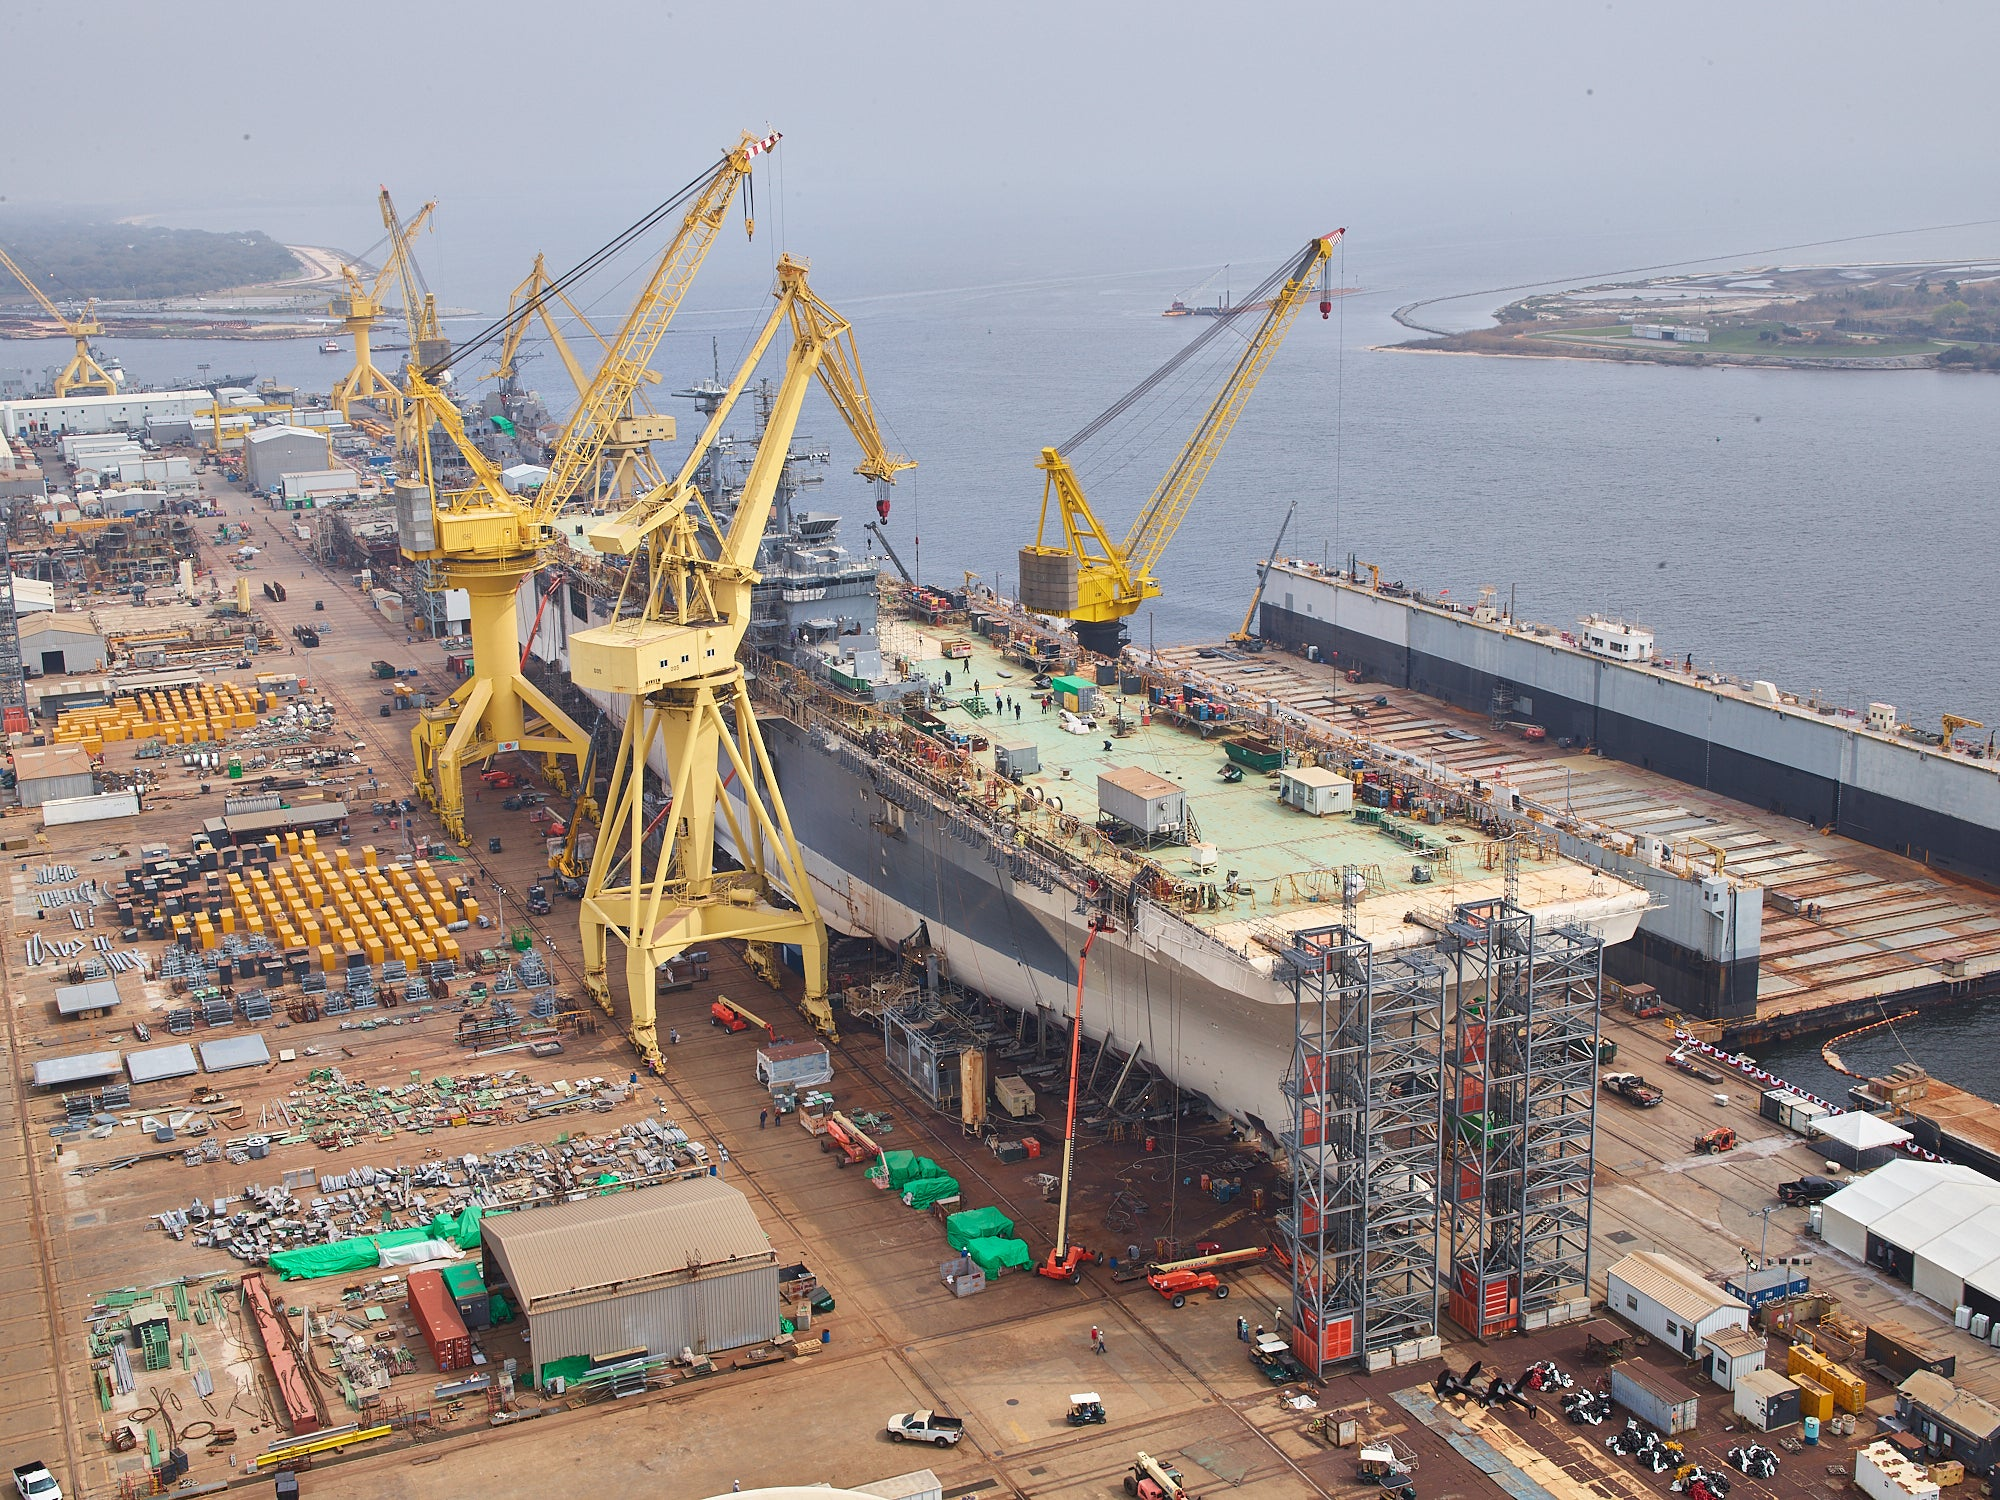 In photos: where Navy warships are built